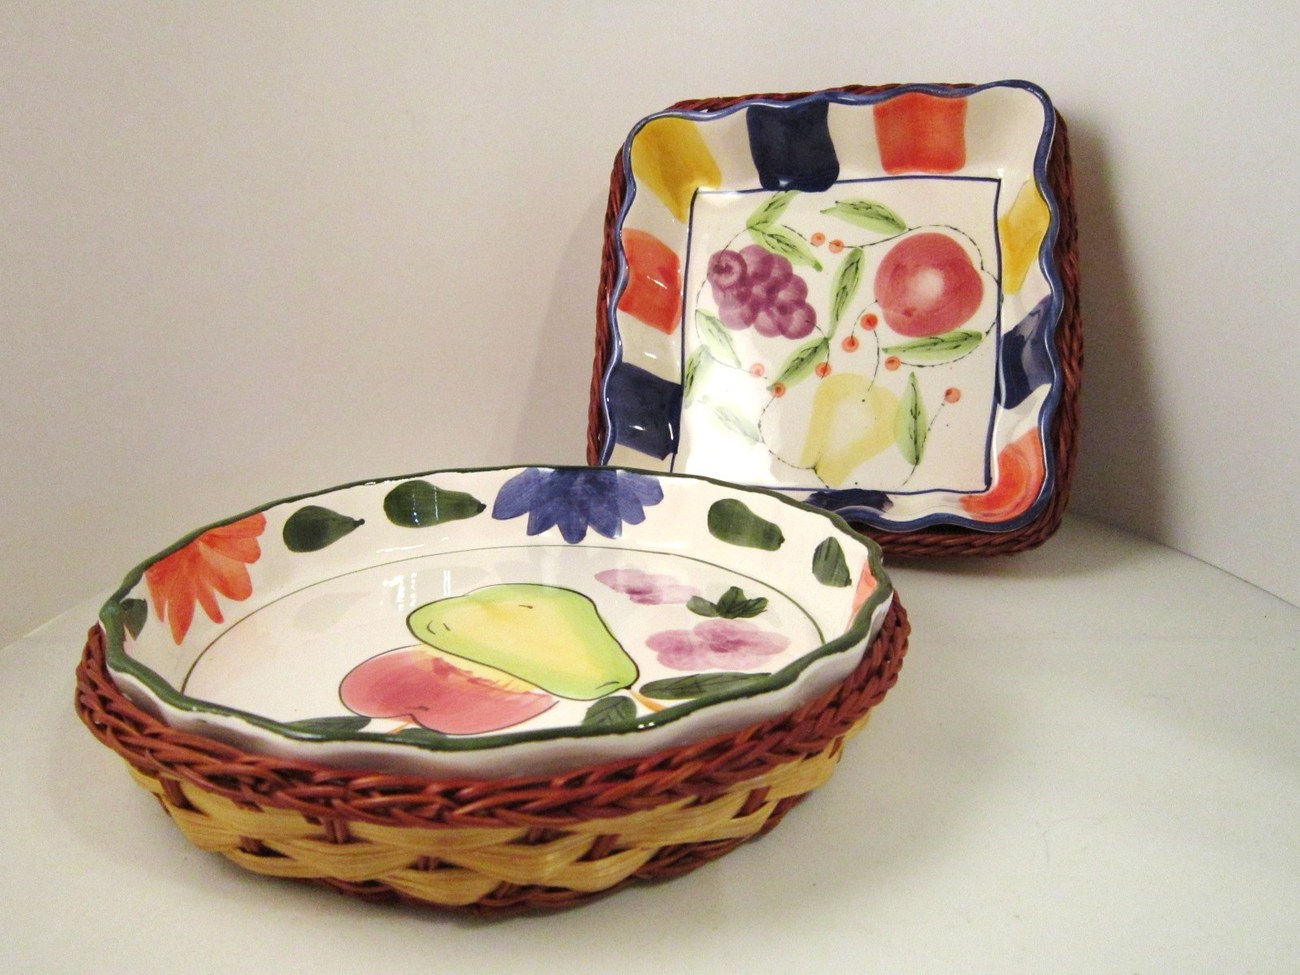 Two Pottery Serving Bowls Wicker Basket Holders, Fruit and Flowers